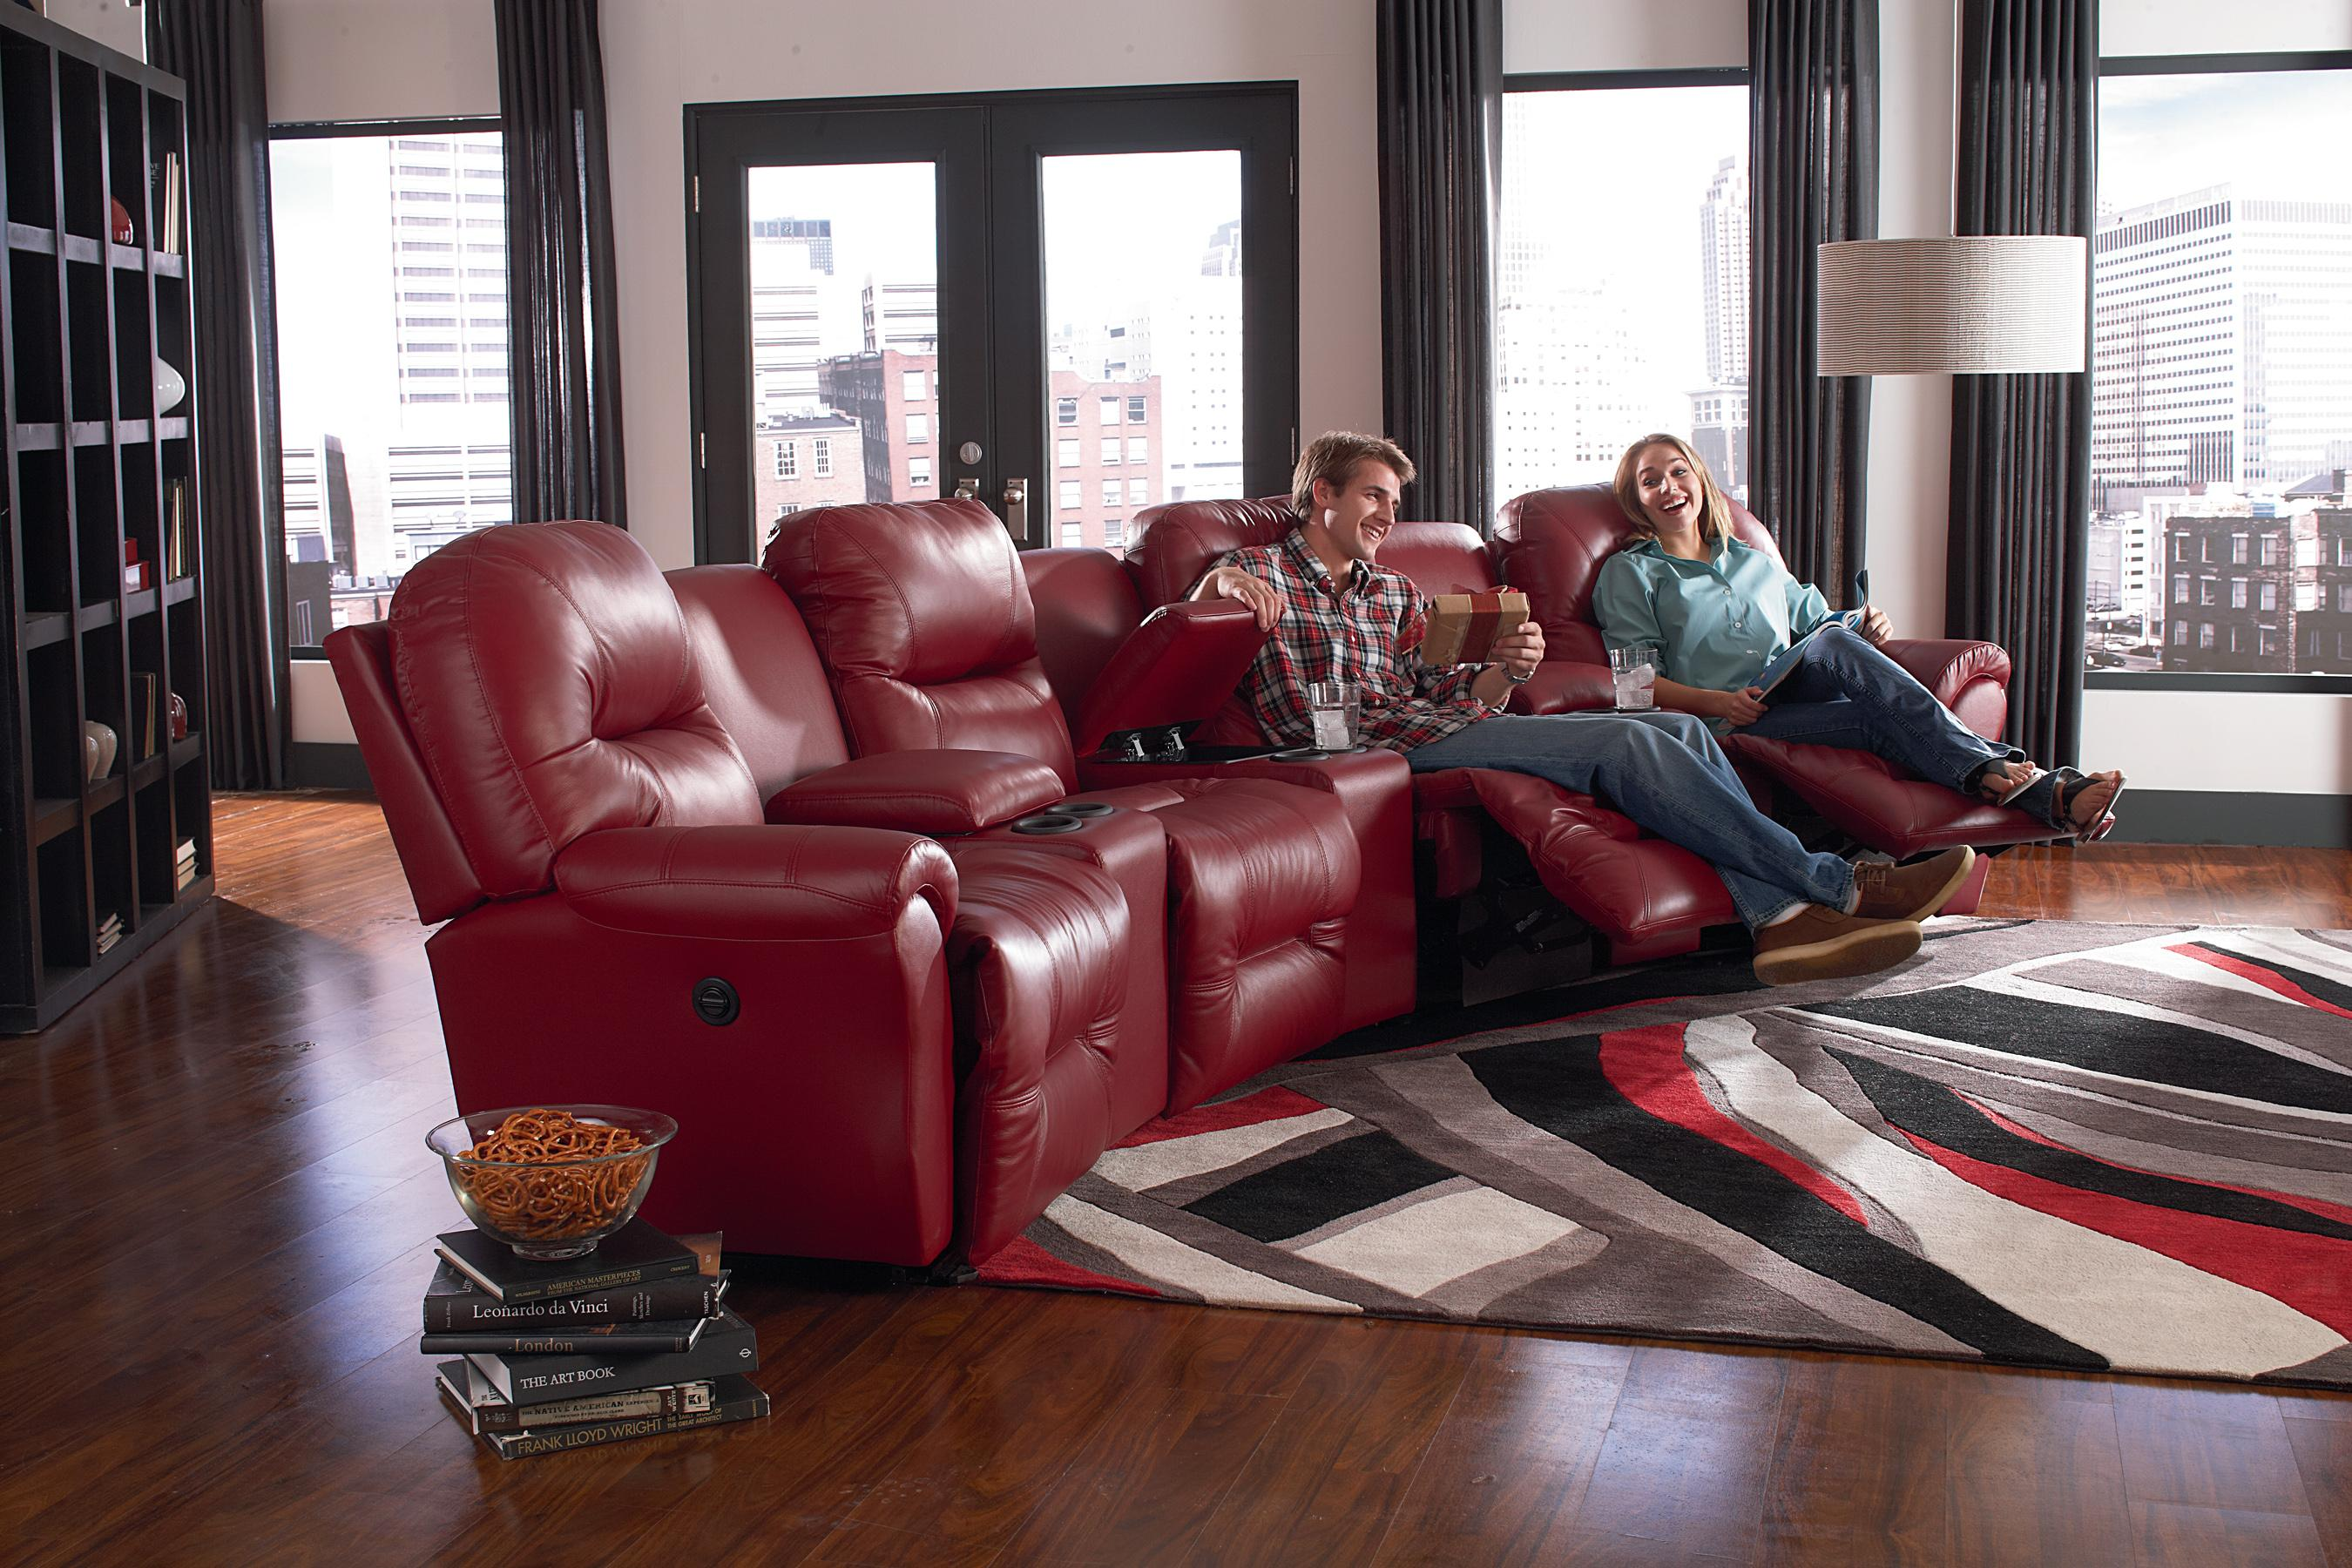 Best Home Furnishings Bodie Six Piece Reclining Sectional Sofa   Wayside  Furniture   Reclining Sectional Sofas. Best Home Furnishings Bodie Six Piece Reclining Sectional Sofa